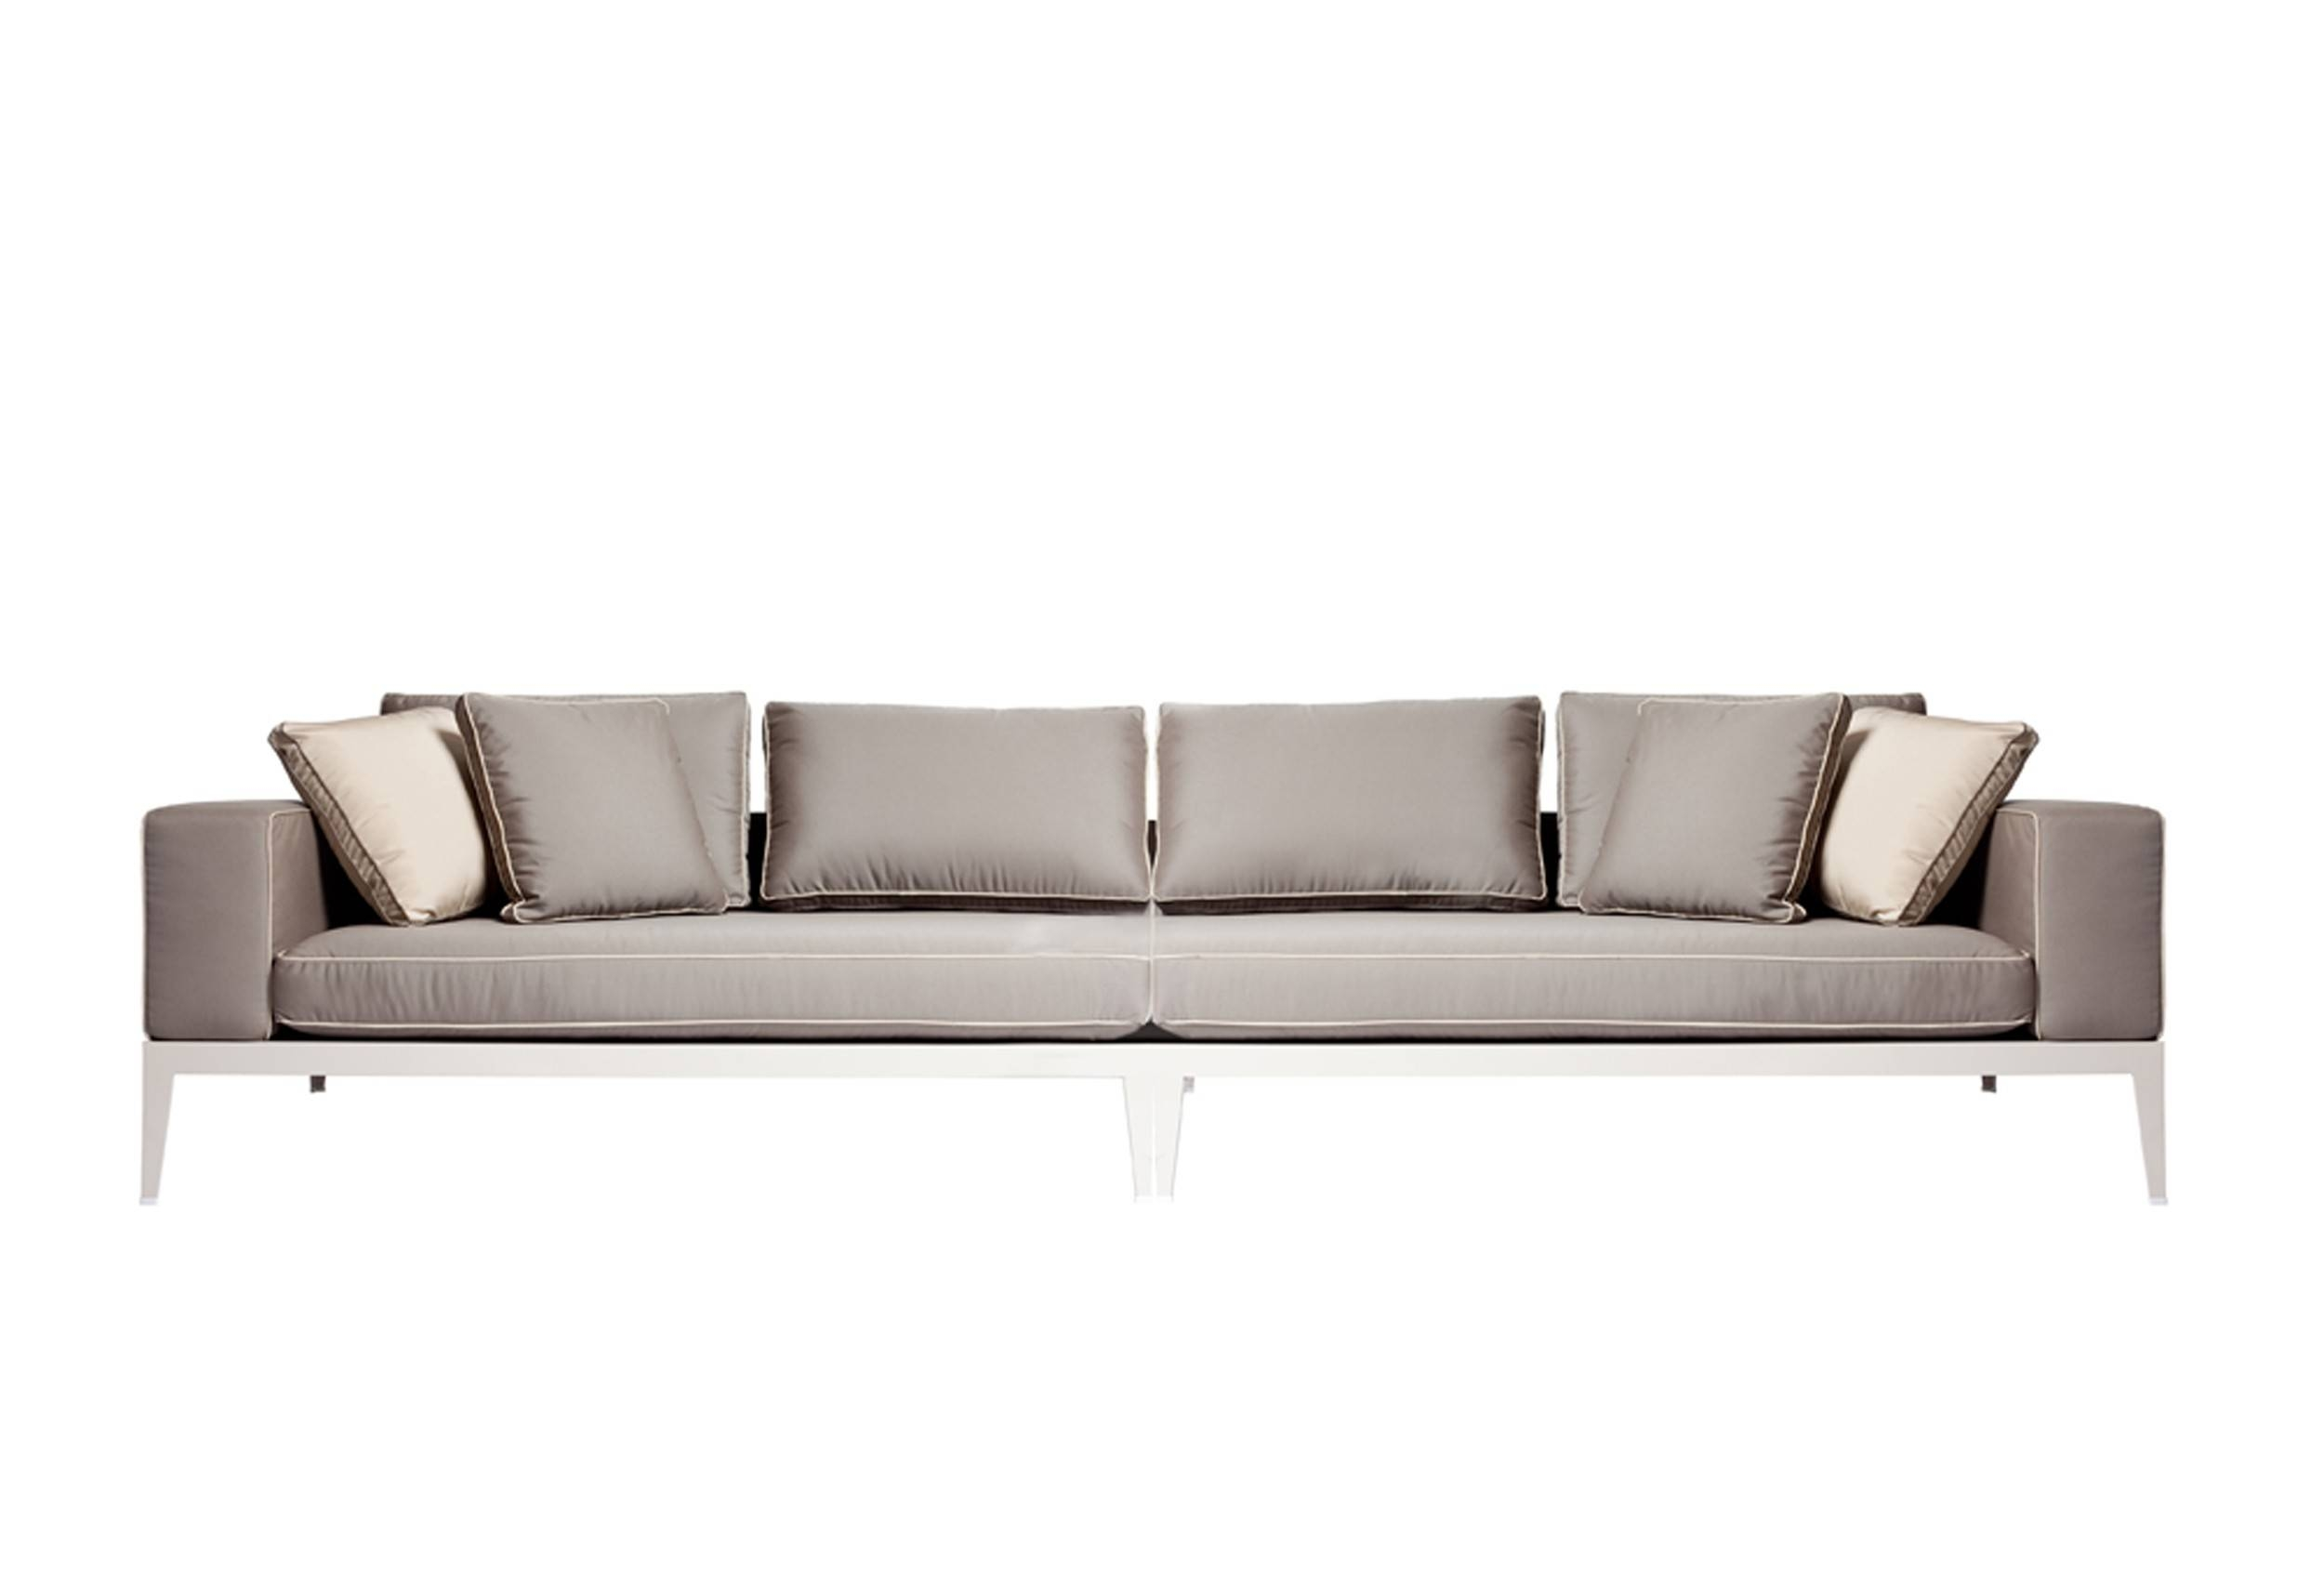 Balmoral 4 Seater Sofa | Viesso with regard to 4 Seater Couch (Image 4 of 30)